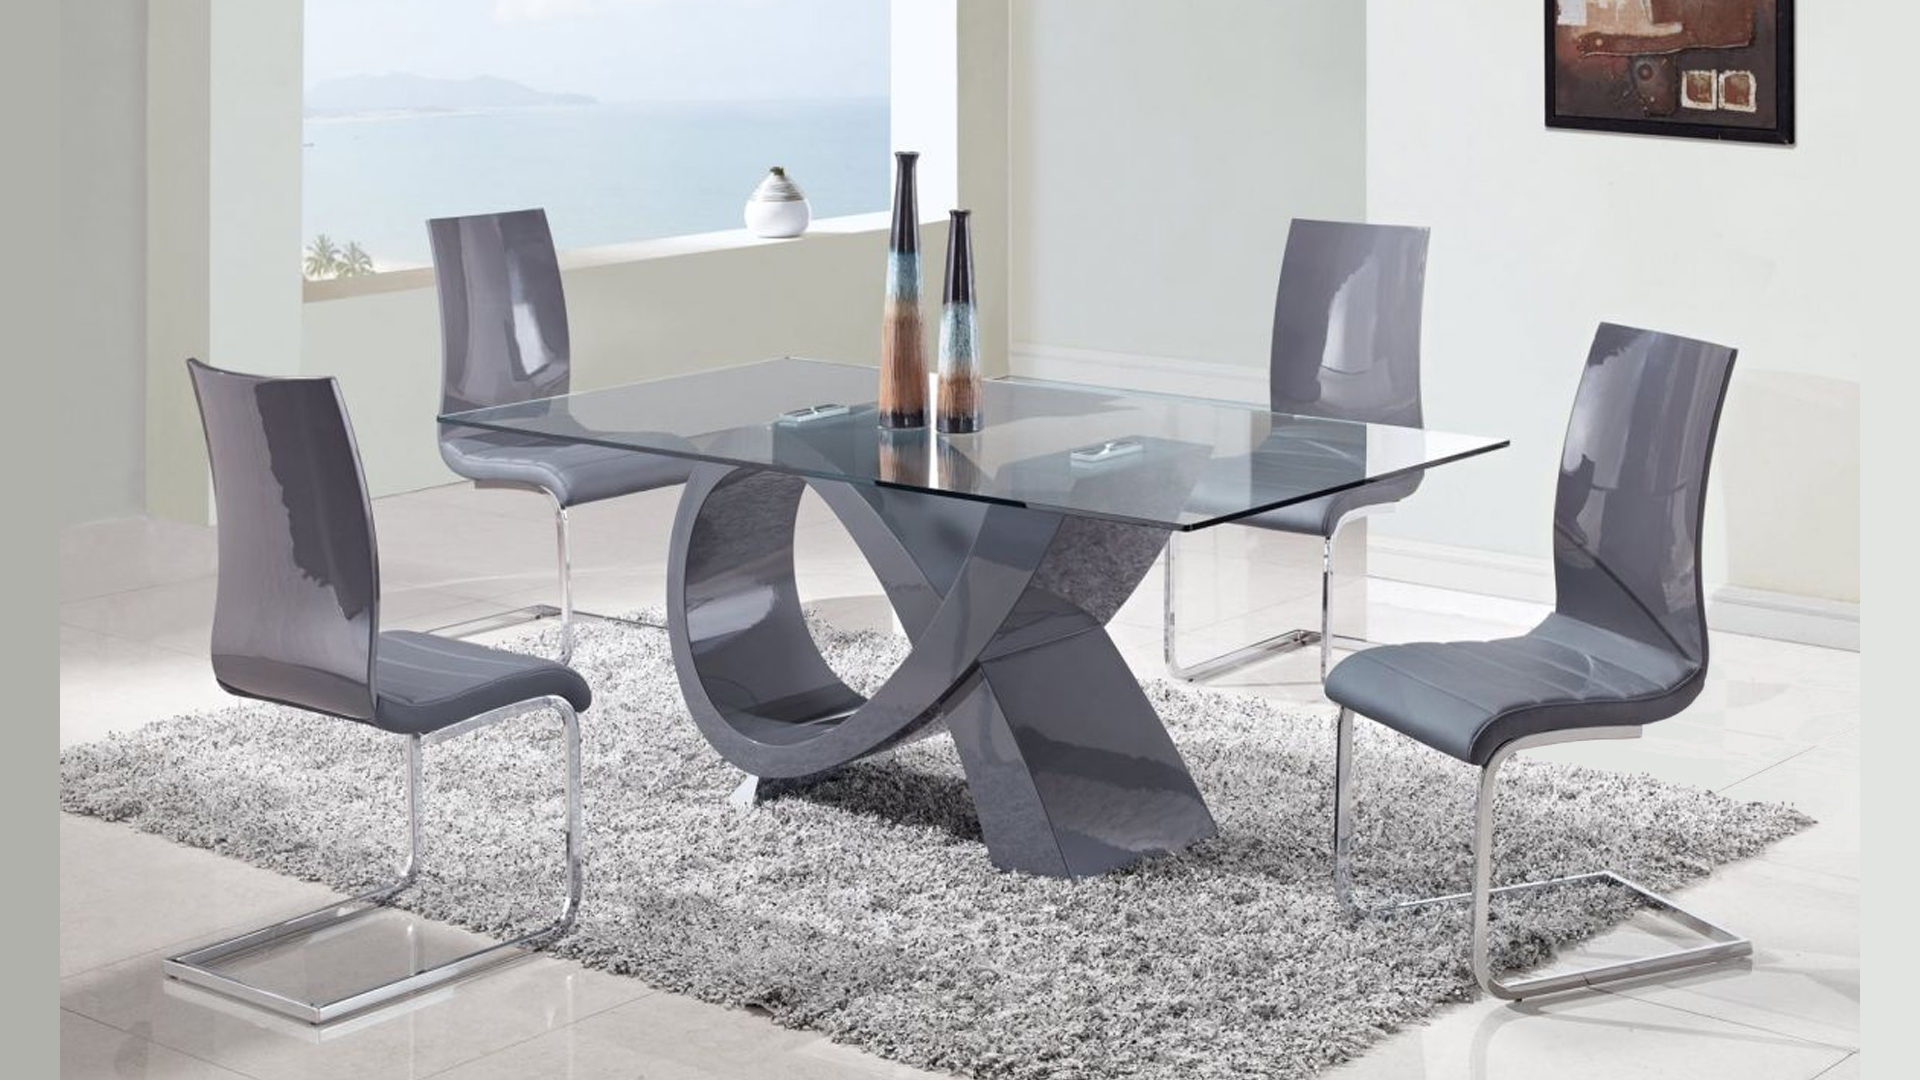 10 Unique Dining Room Tables   Design Trends – Premium Psd Pertaining To Current Benchwright Bar Height Dining Tables (View 14 of 25)